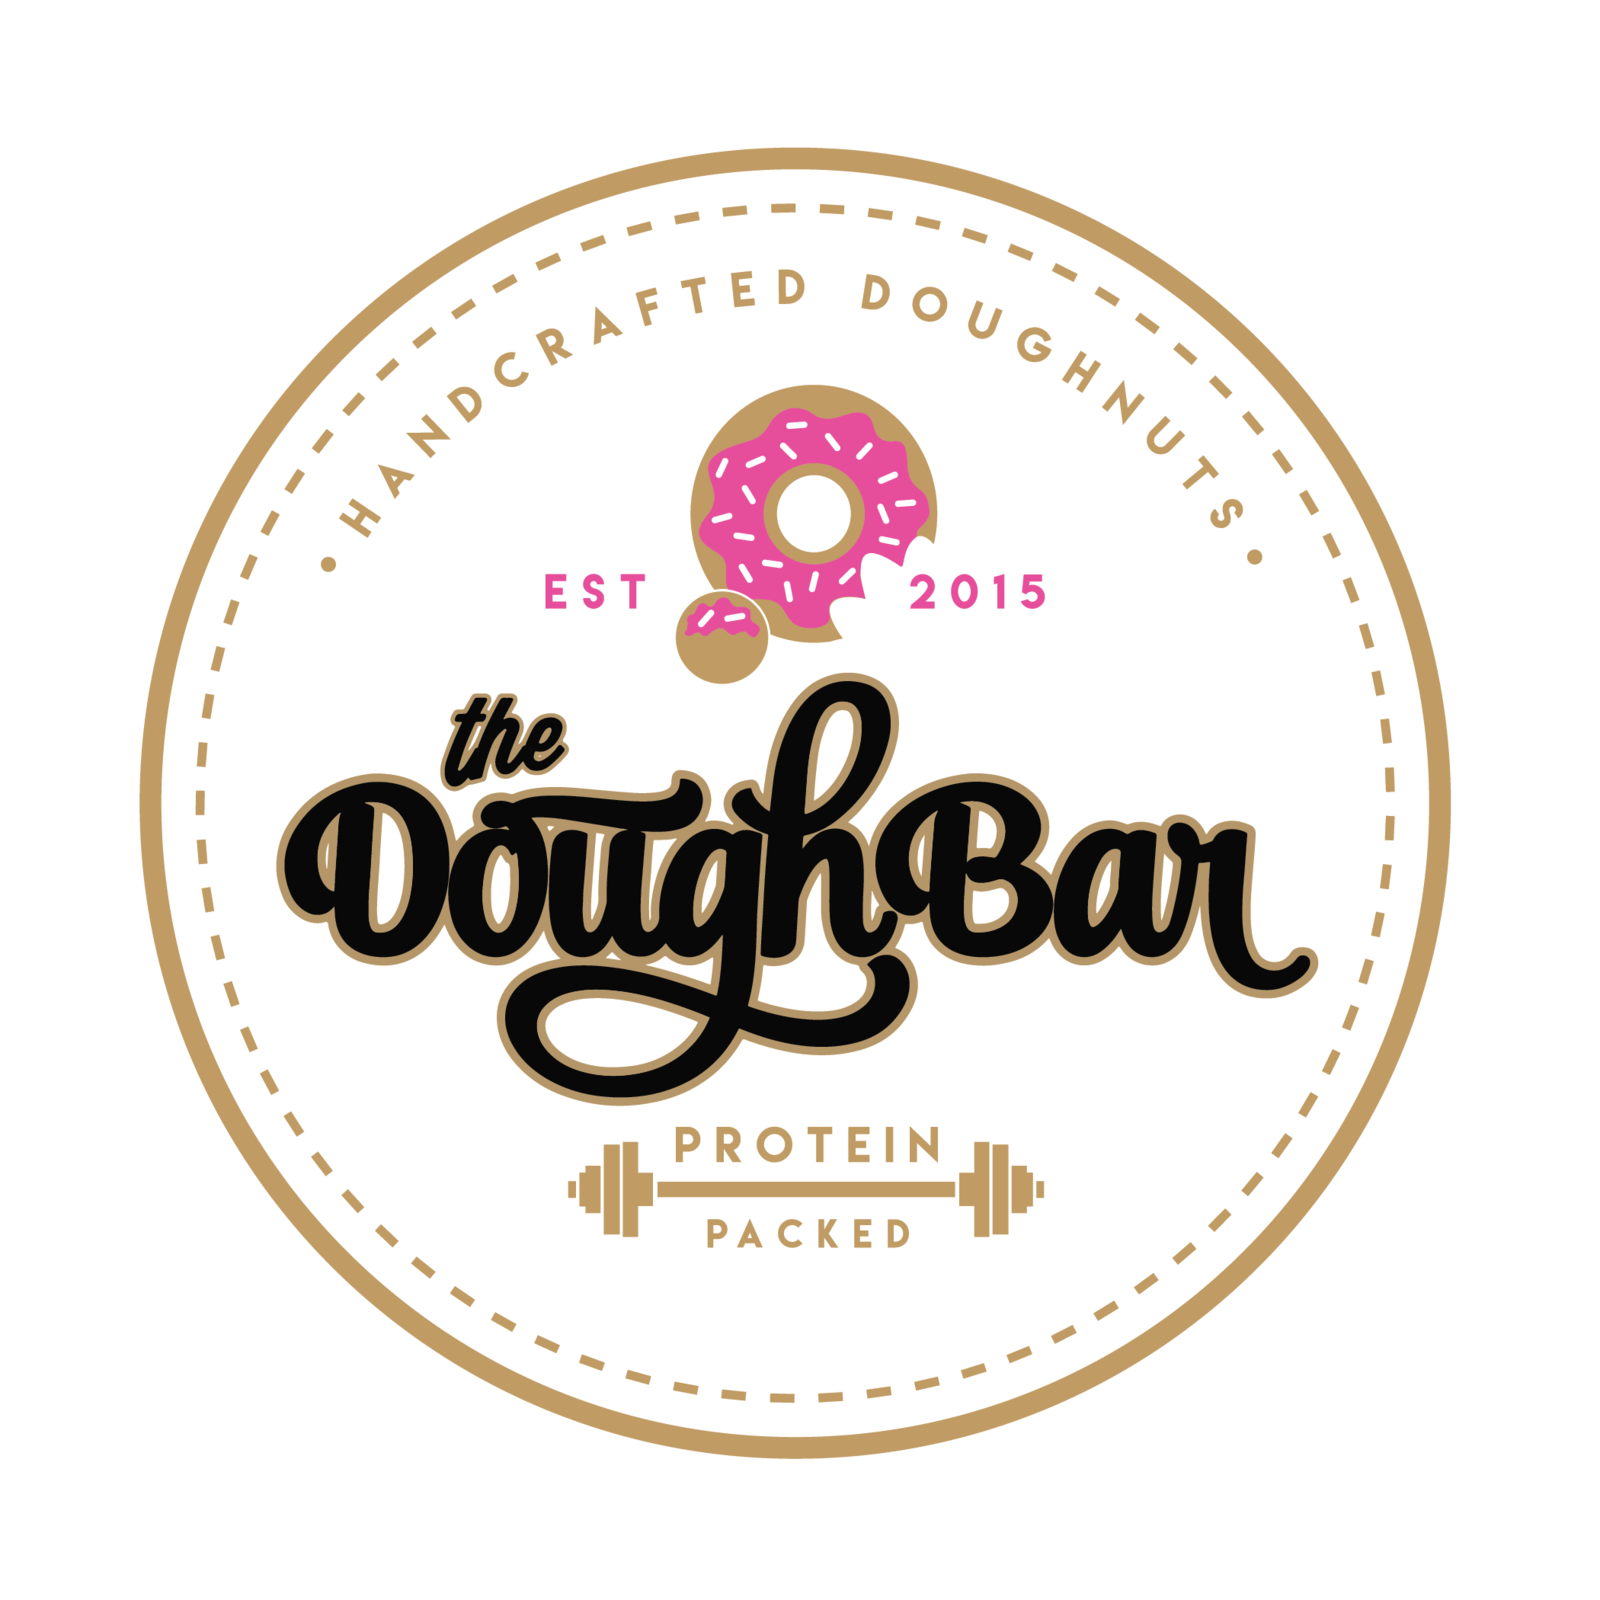 The Dough Bar